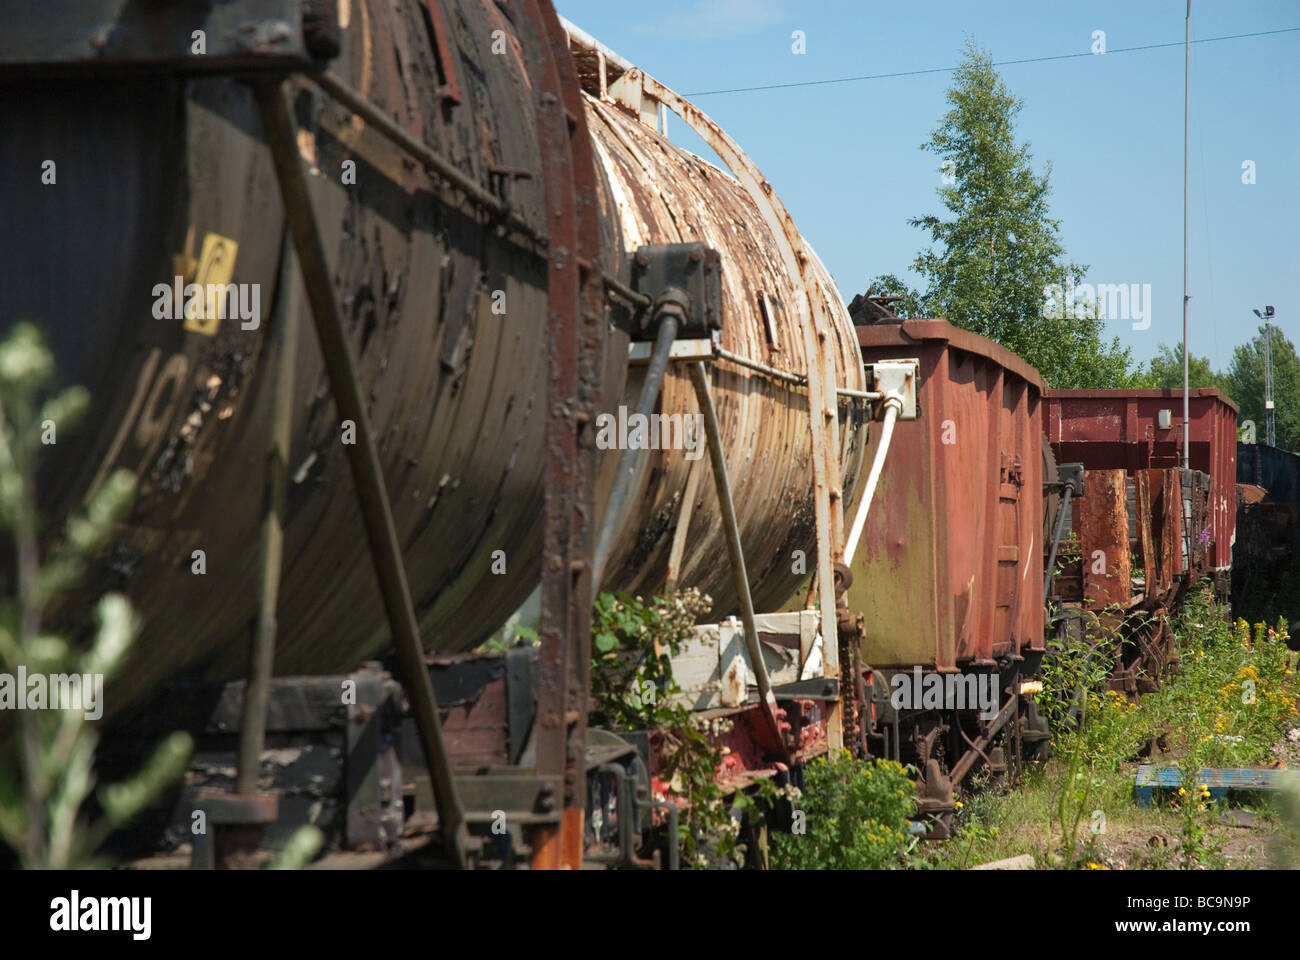 Rusty Railway Carriages - Stock Image